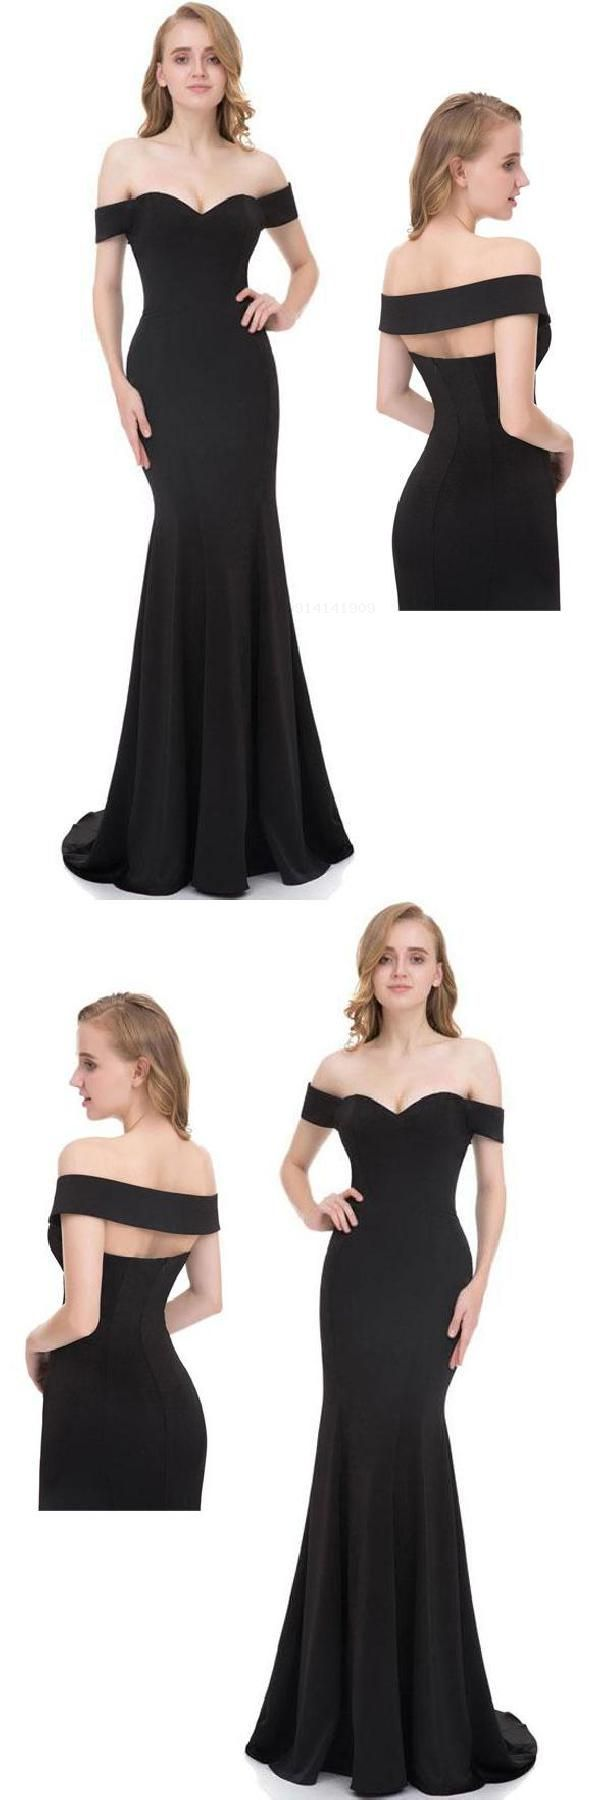 Outlet cute backless party dresses mermaid prom dresses party